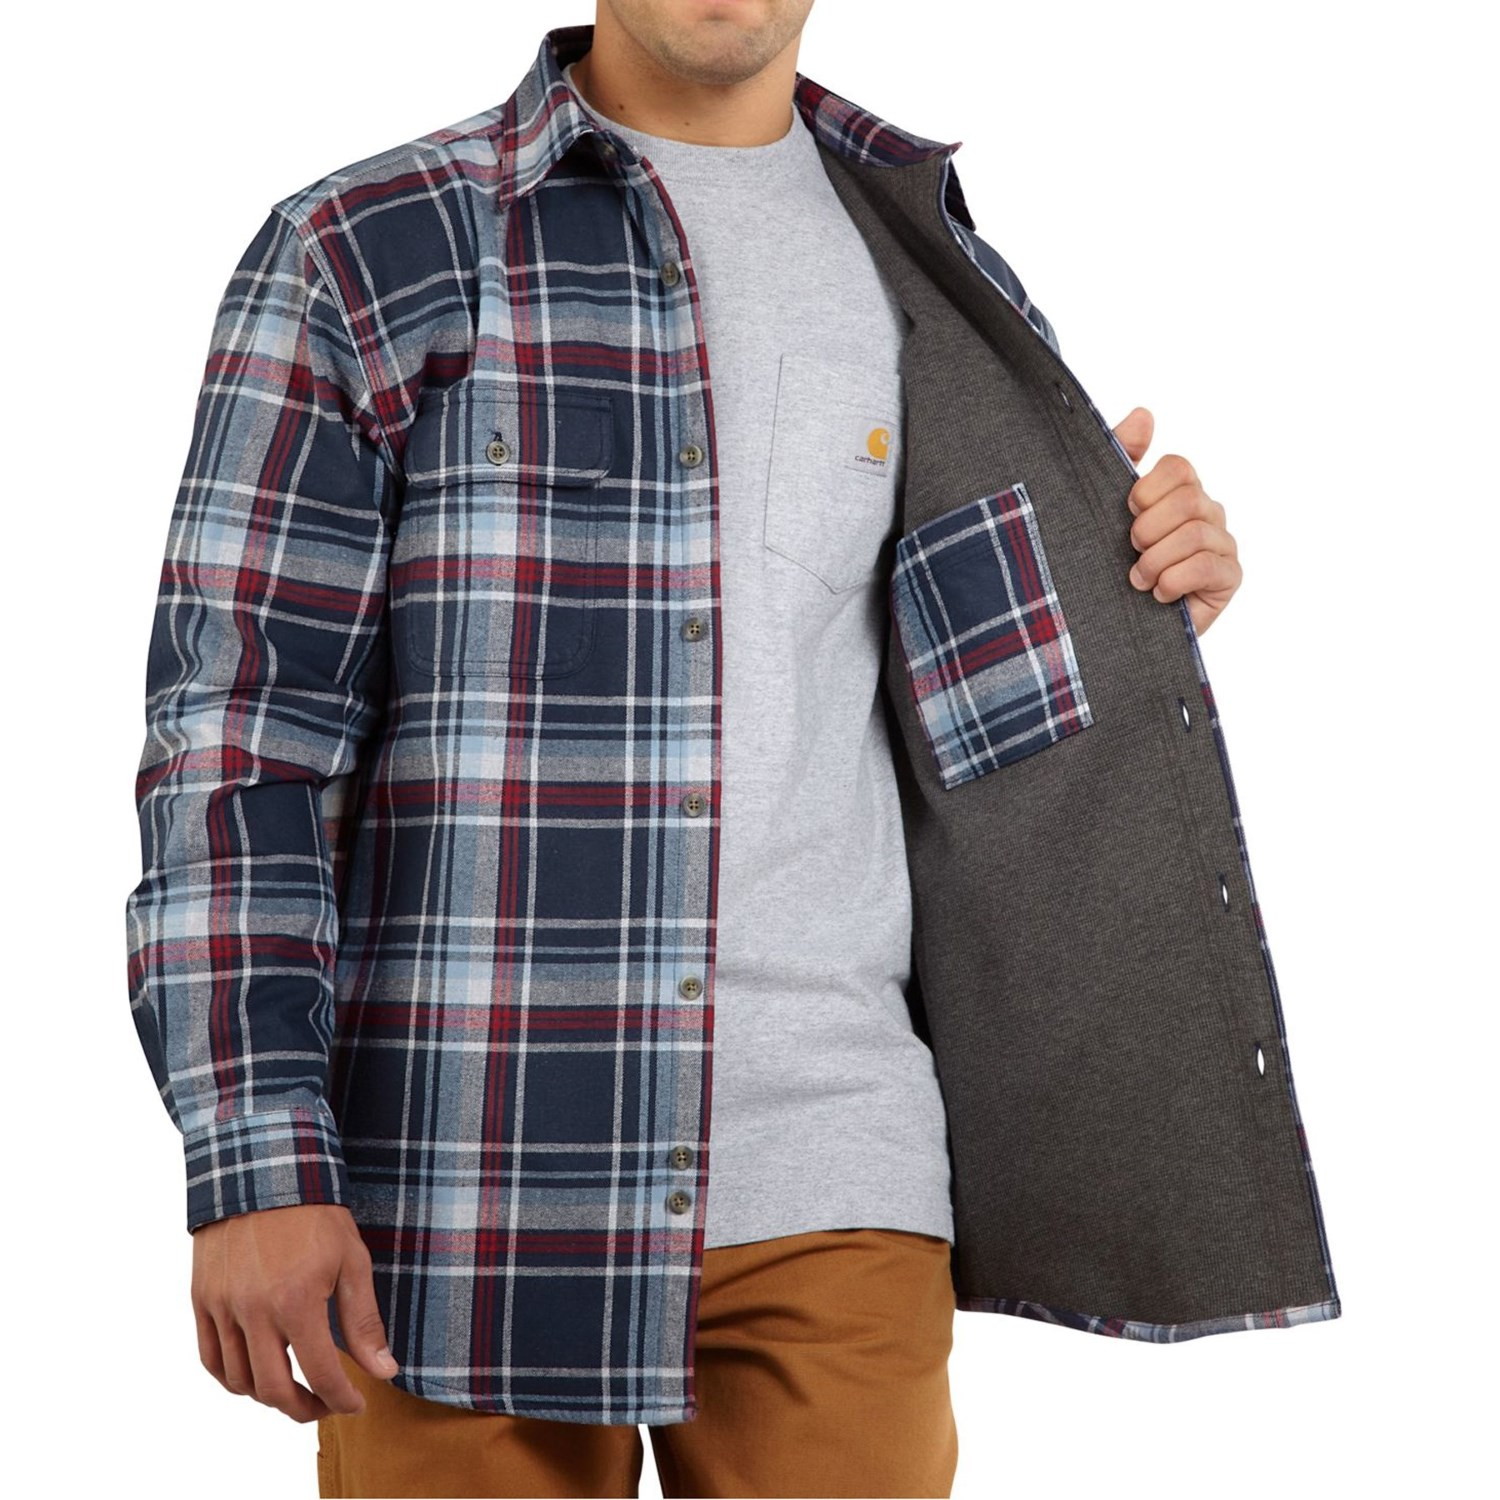 Jemcor Flannel Jackets. invalid category id. Jemcor Flannel Jackets. Circle S Coat Mens Houston Micro Suede Versatile Sports CC Product Image. Price $ Marketplace items (products not sold by mundo-halflife.tk), and items with freight charges are not eligible for ShippingPass.